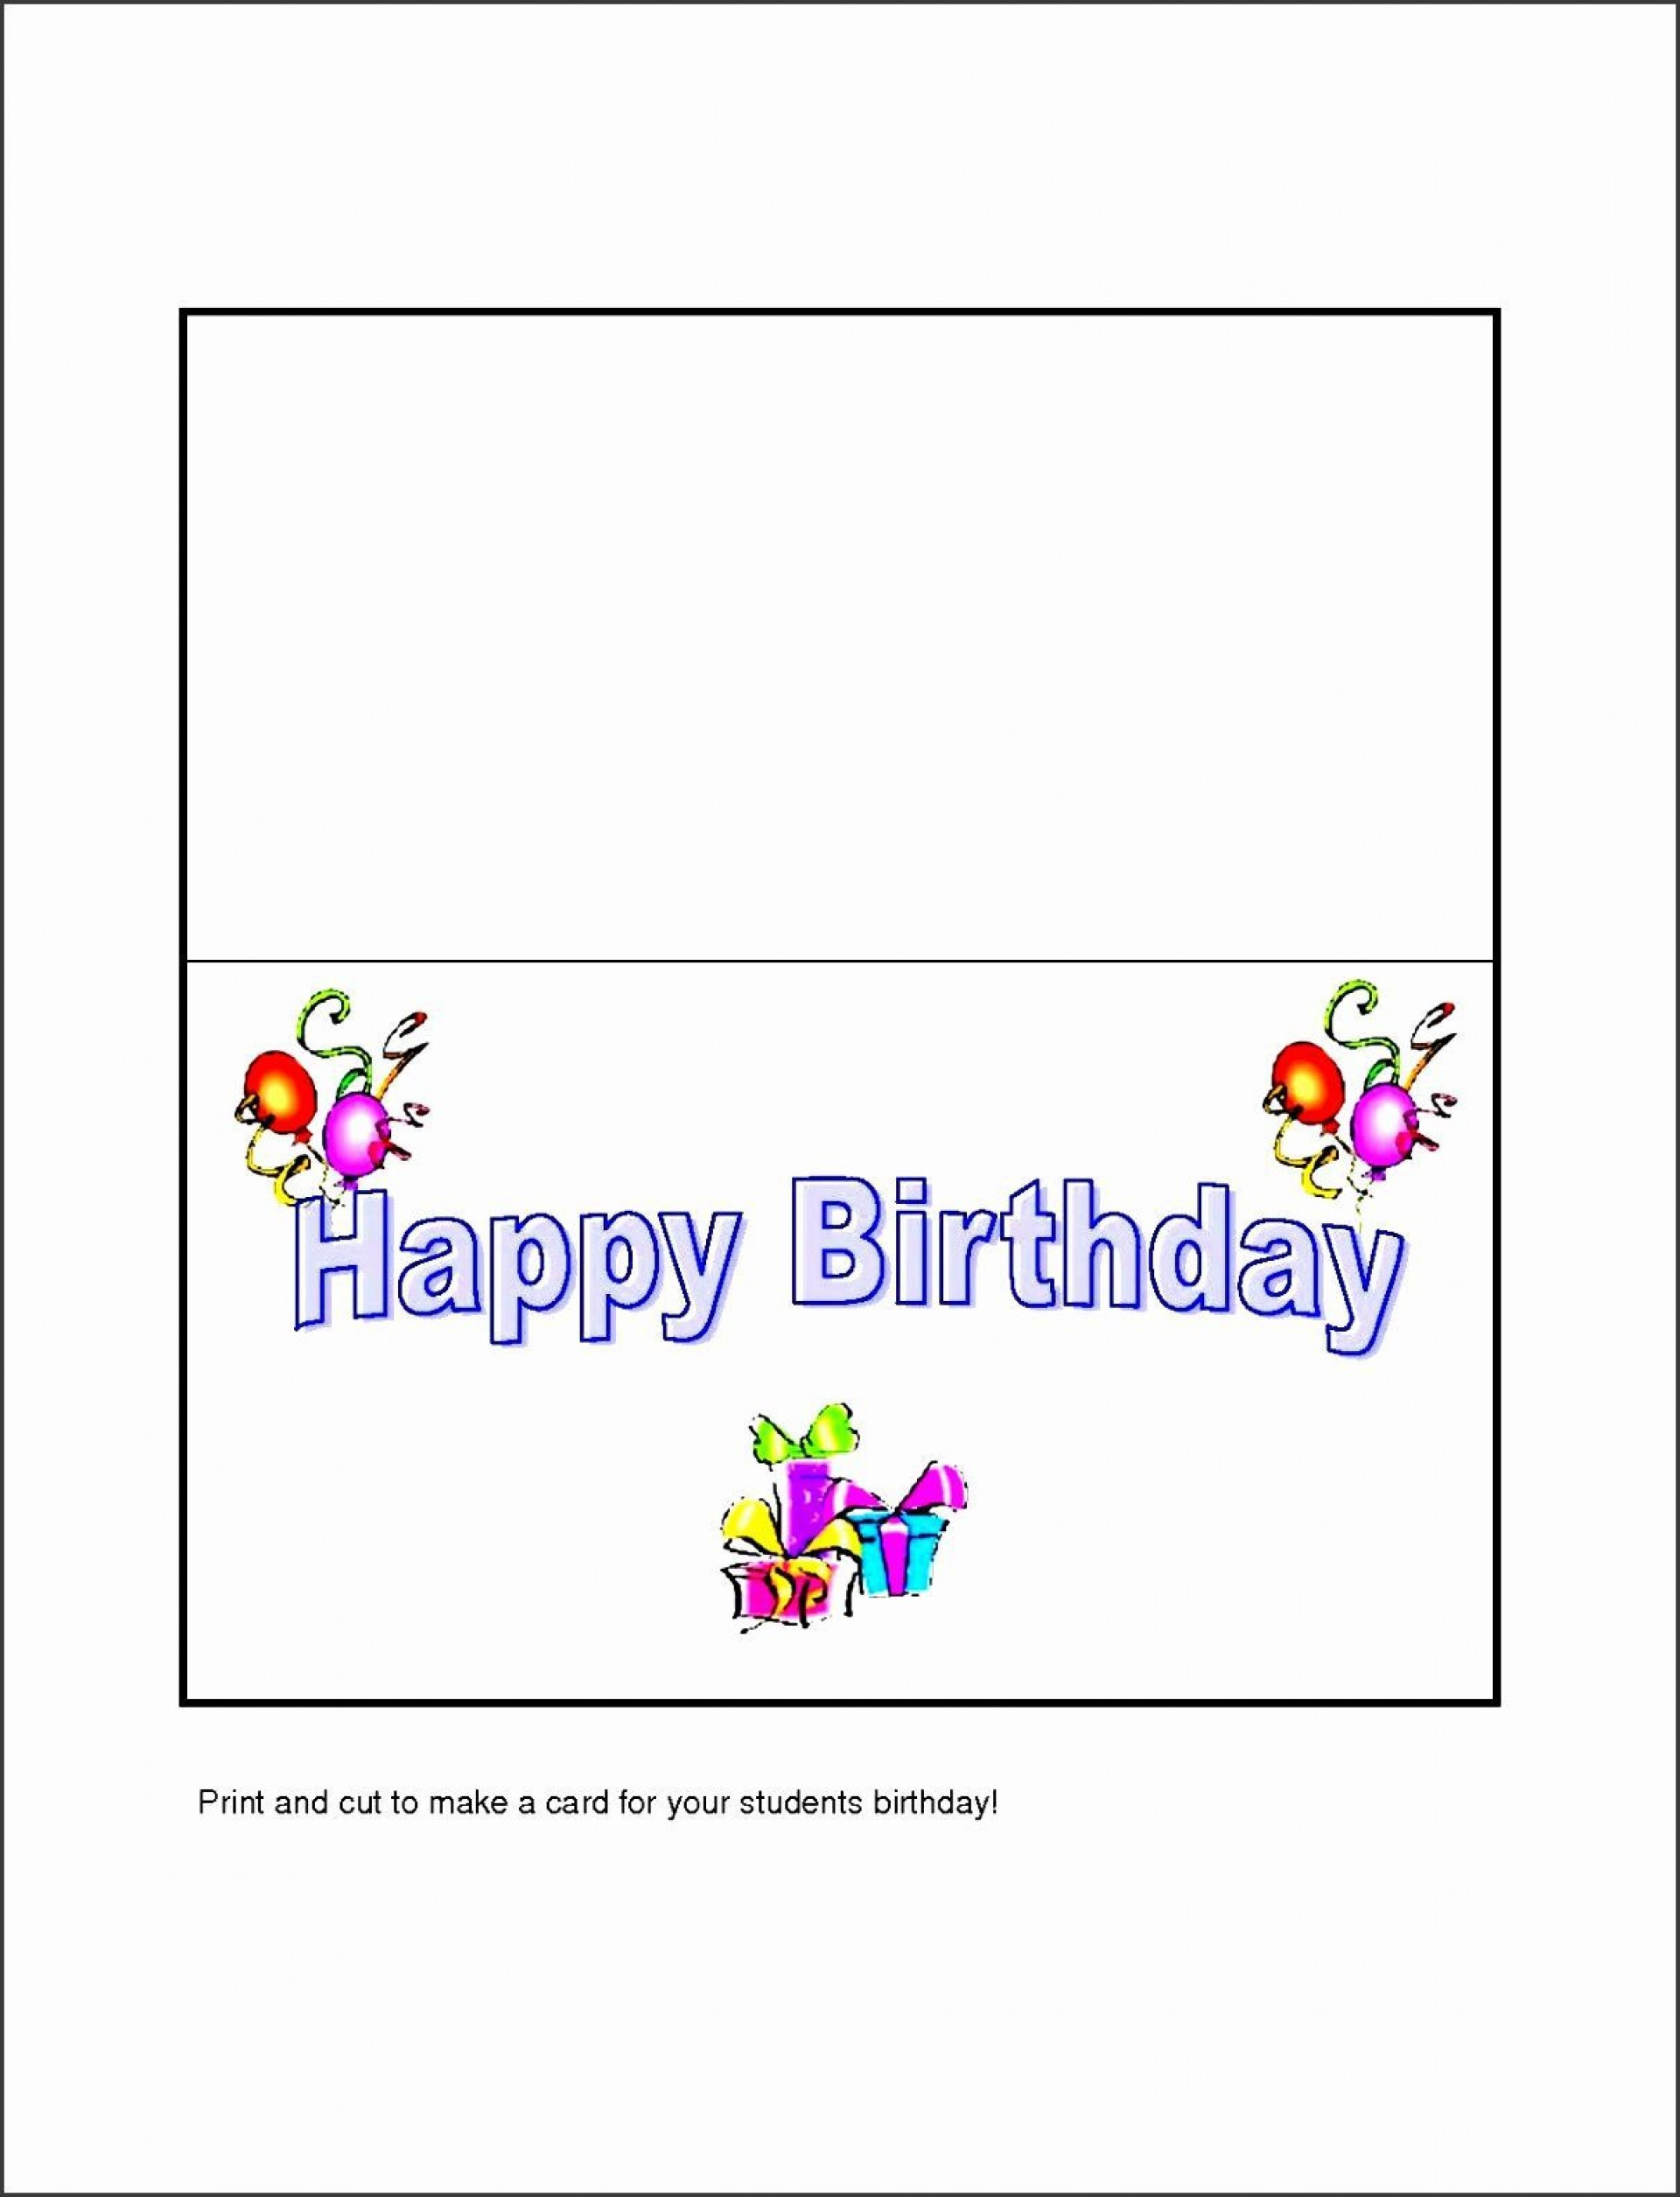 004 Frightening Birthday Card Template Word Highest Clarity  Blank Greeting Microsoft 20101920